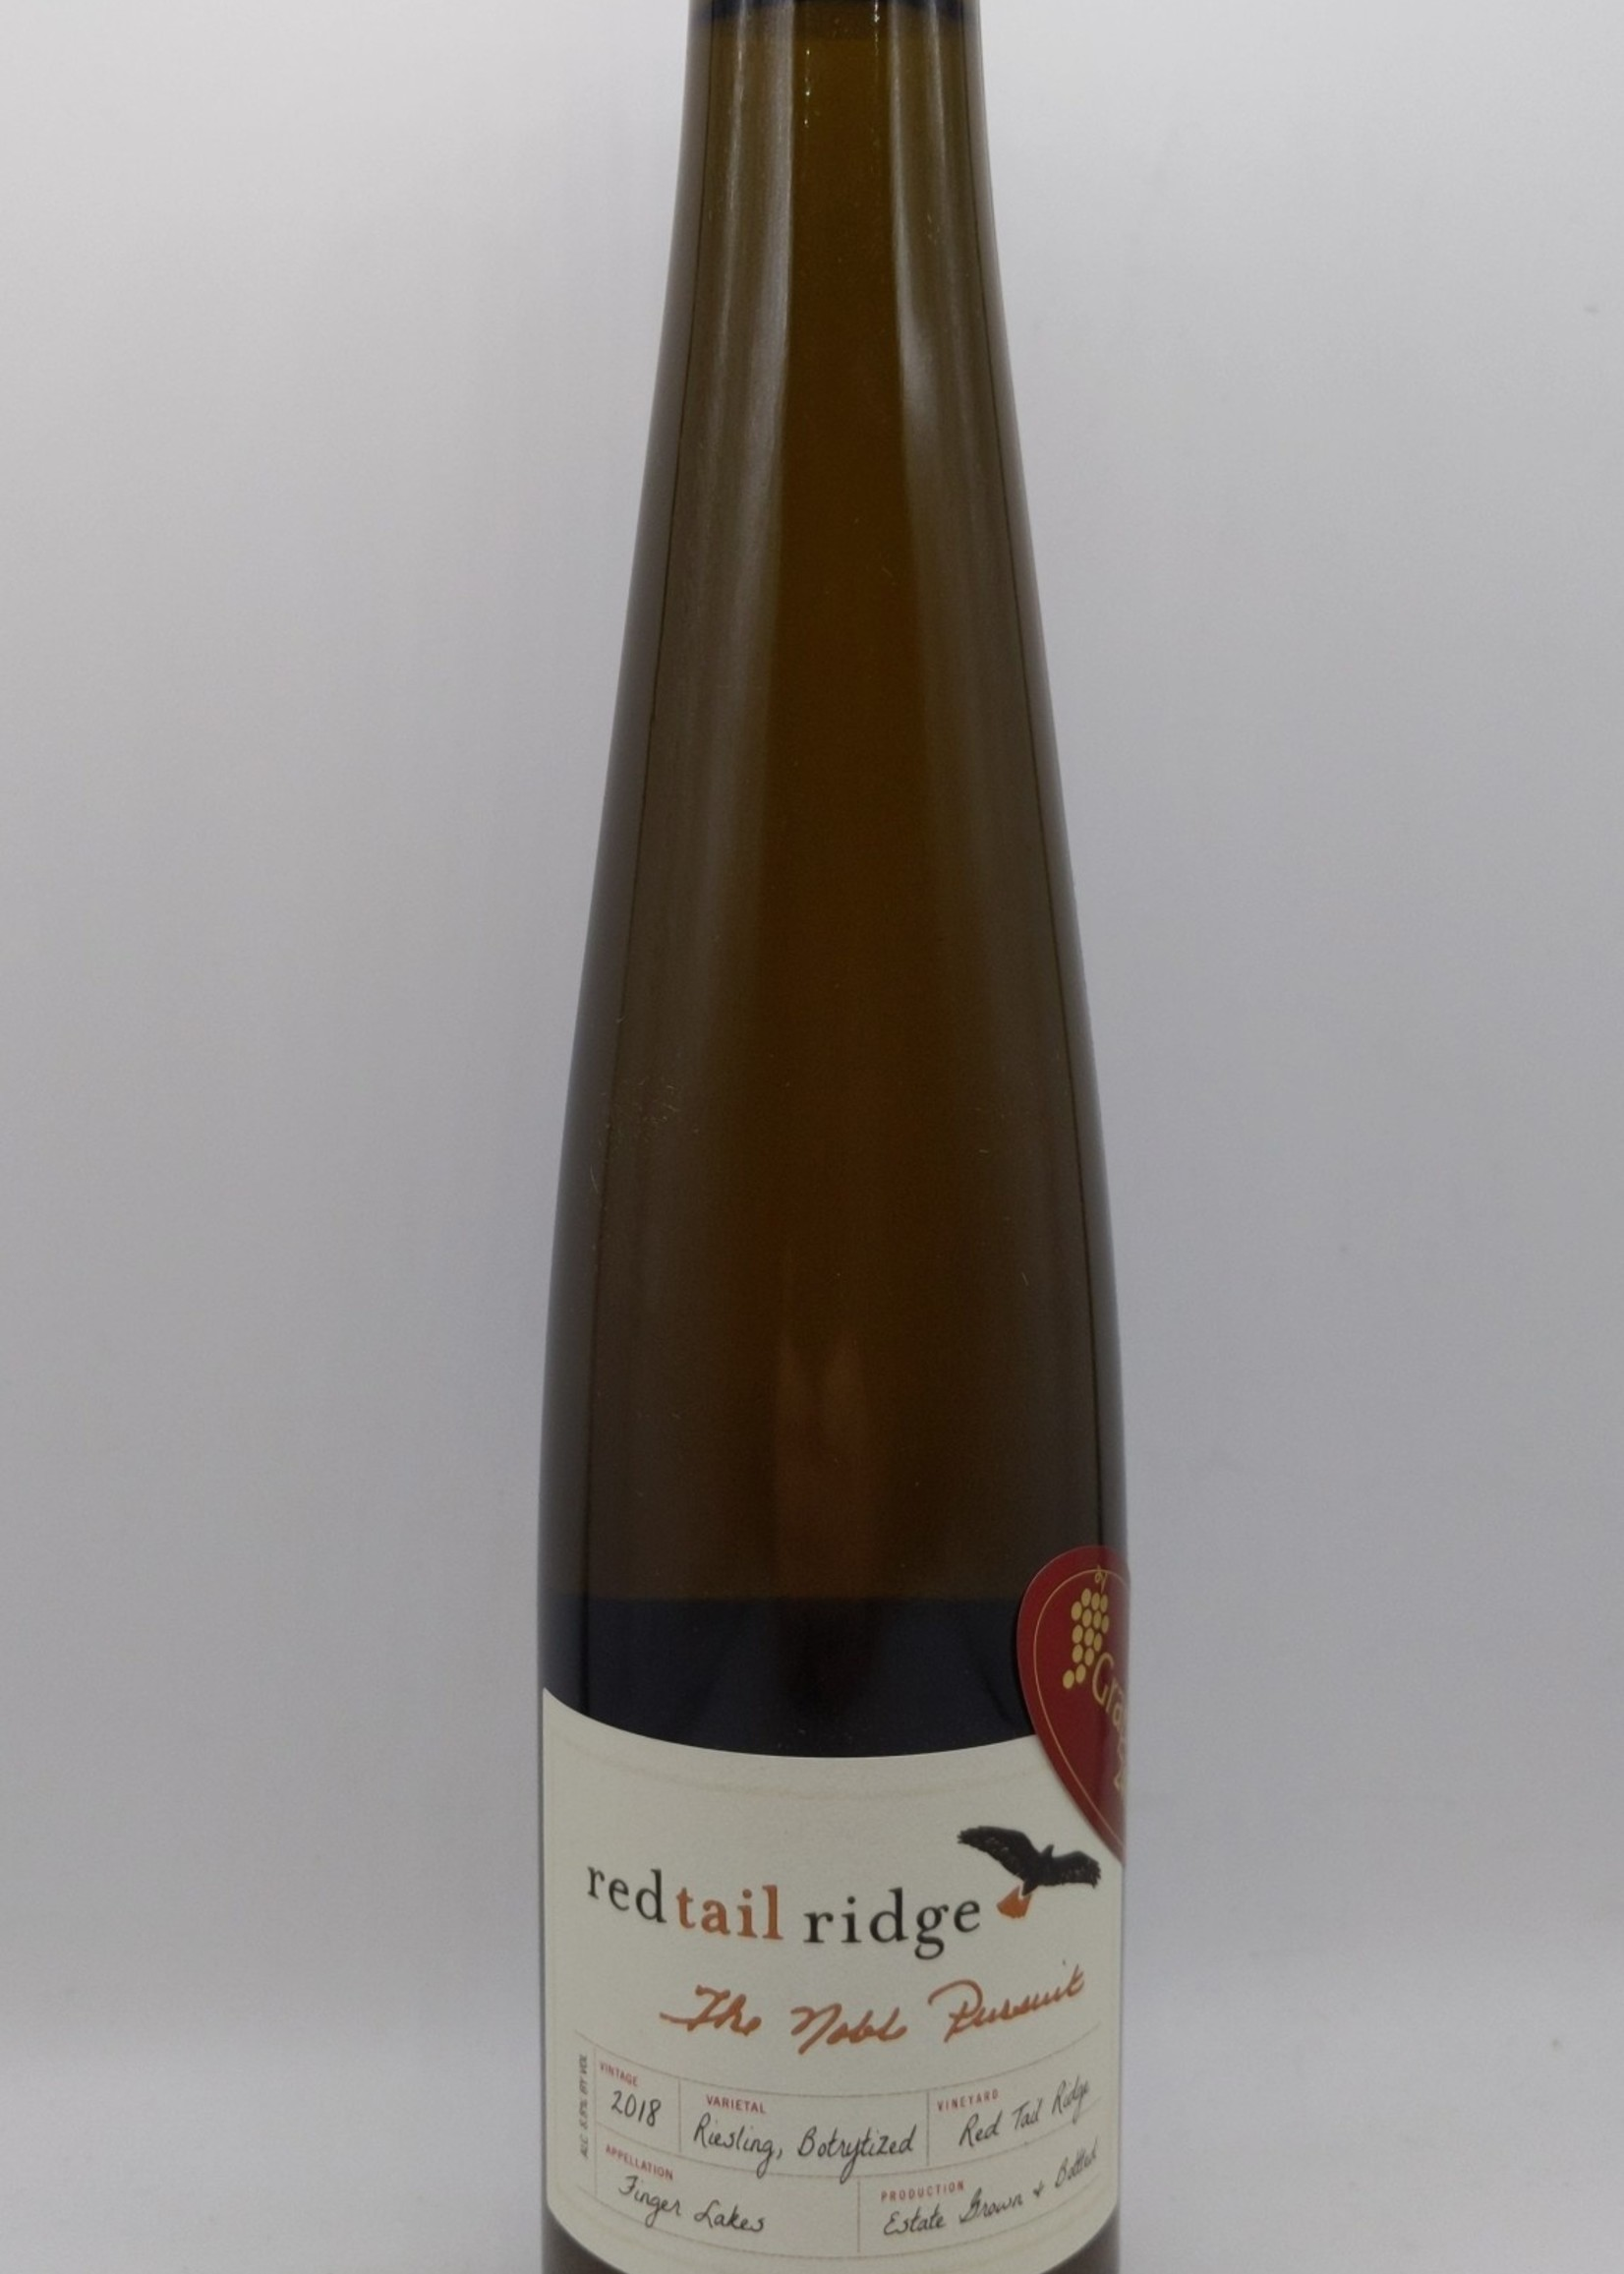 2018 RED TAIL RIDGE THE NOBLE PURSUIT 375ml